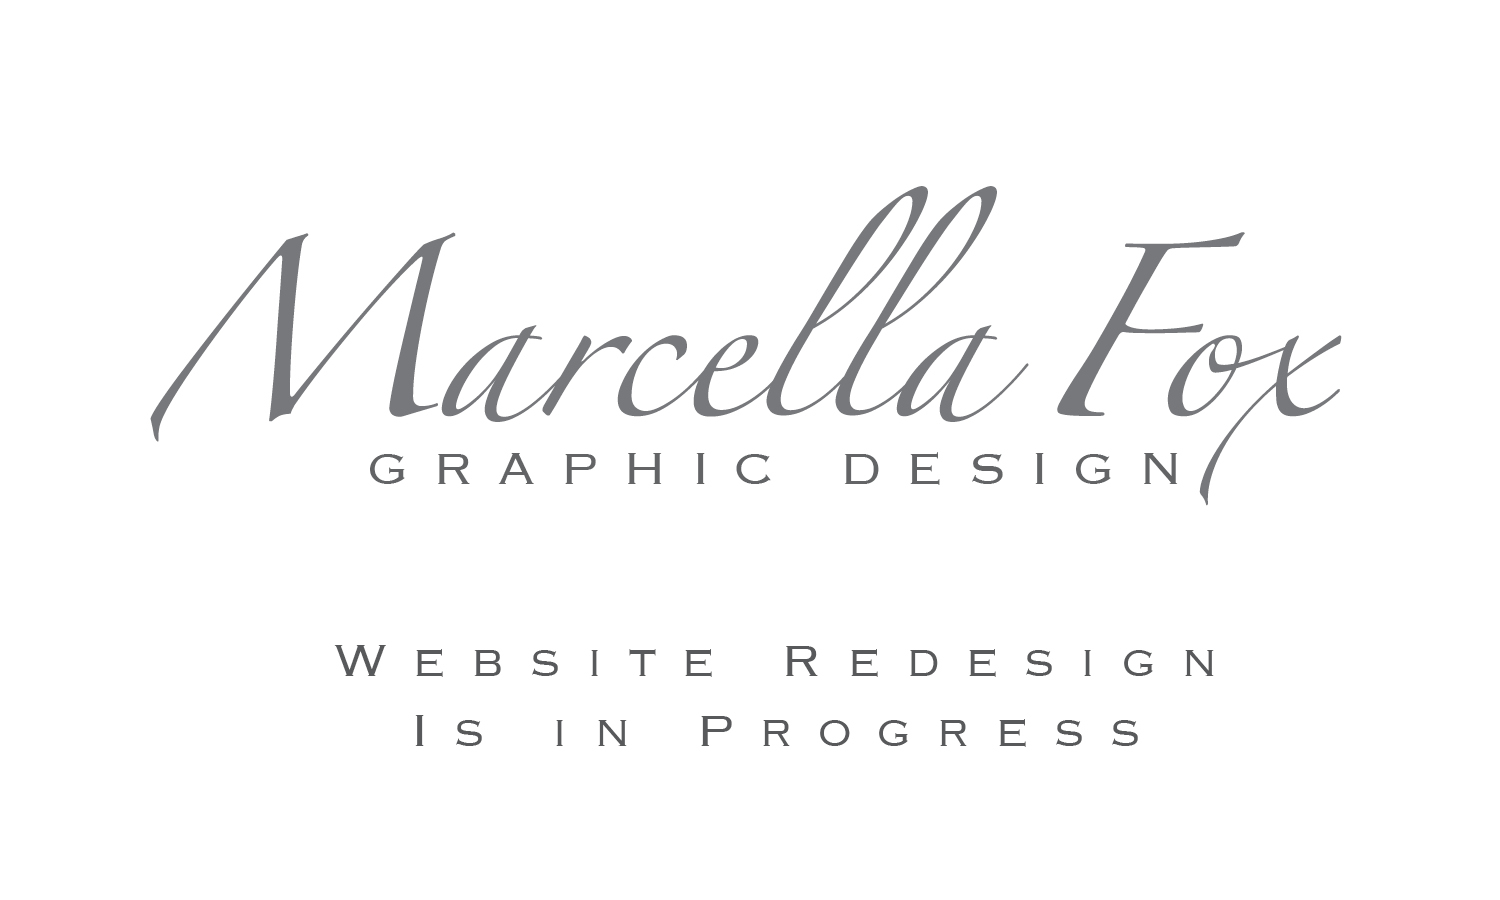 Marcella Fox Graphic Design (logotype)